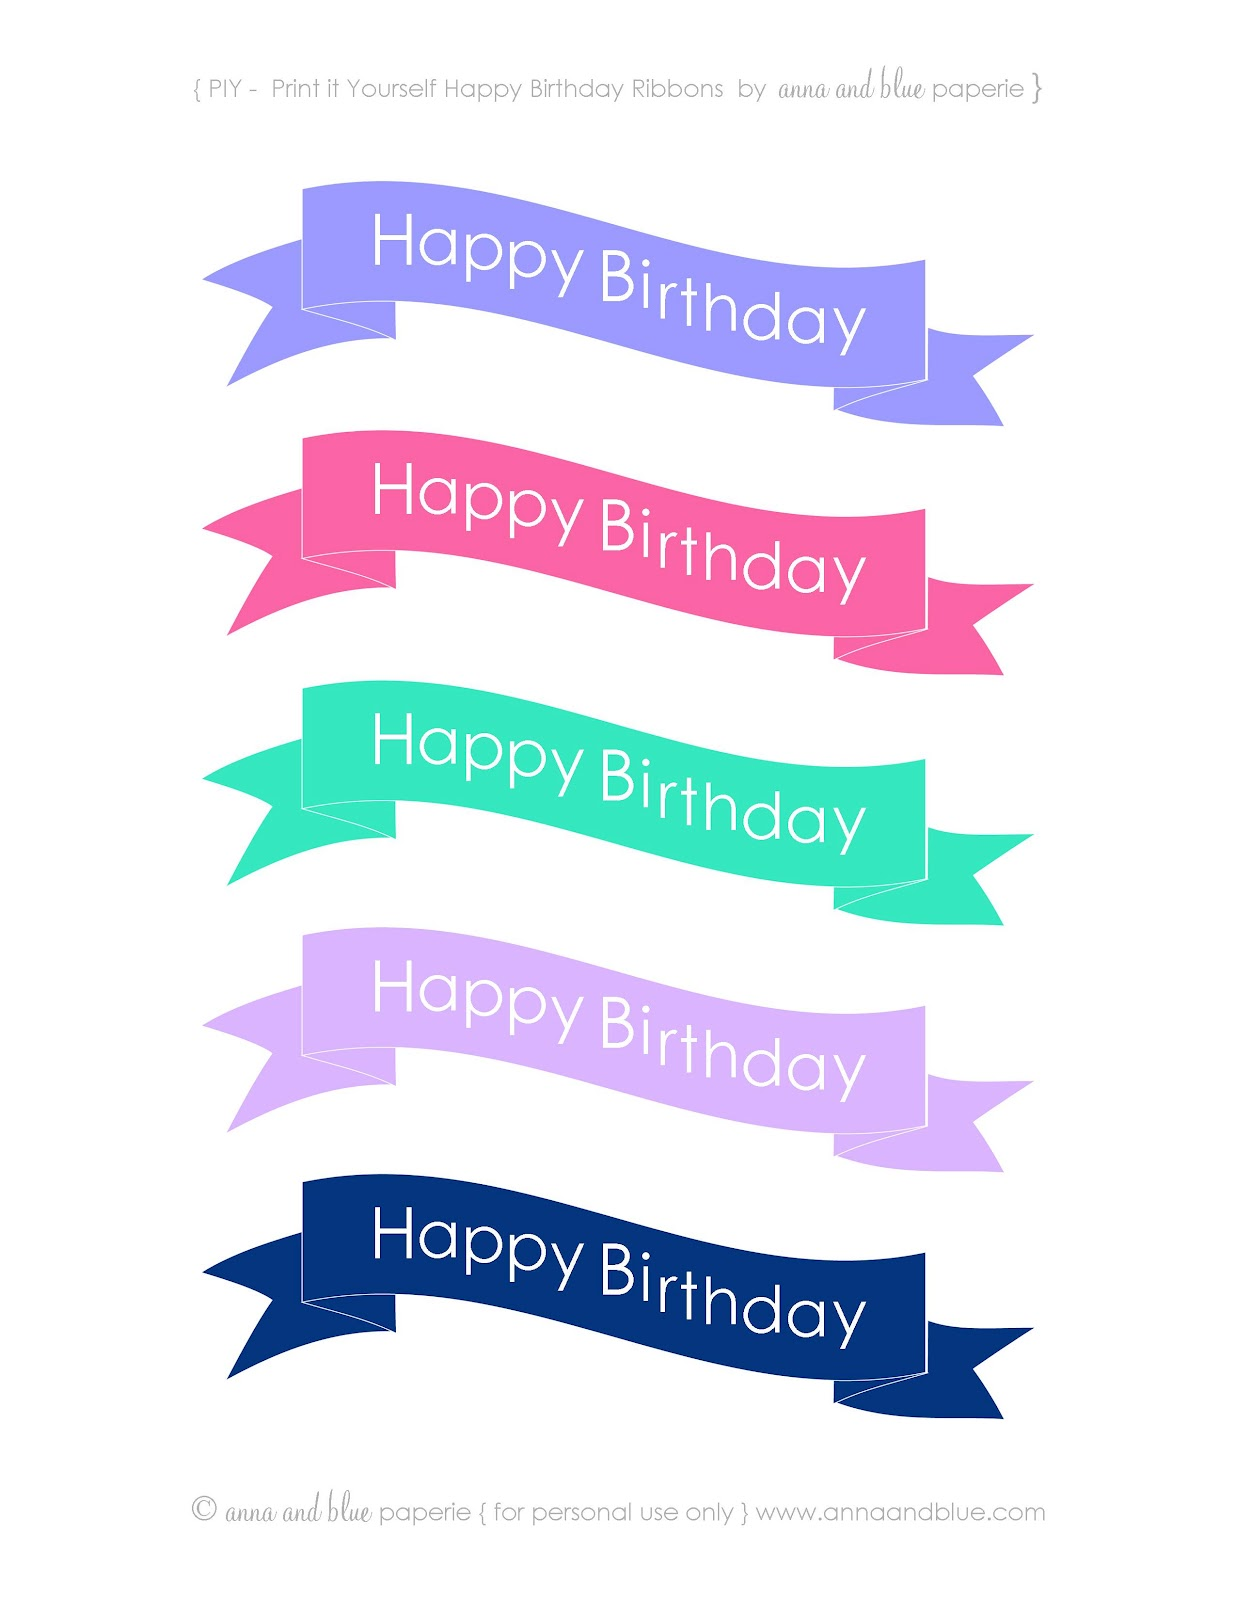 happy birthday sign cake toppers ; happy-birthday-banner-cake-topper-printable-happy+birthday+ribbons+2